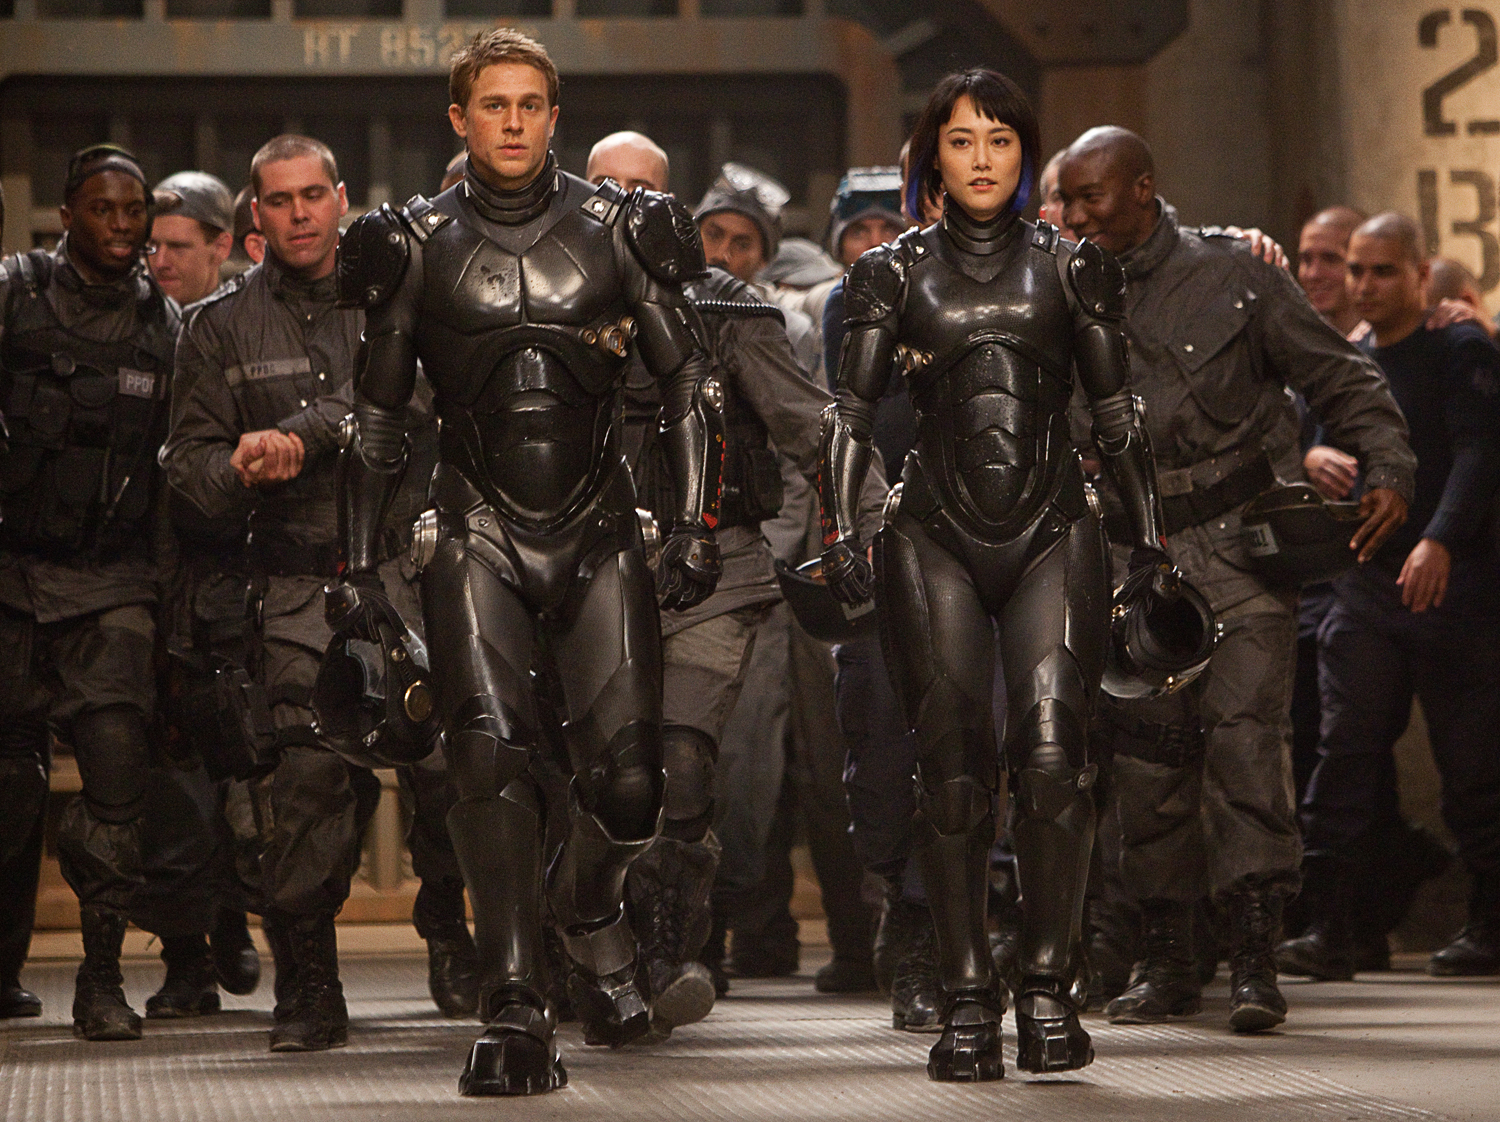 Pacific Rim Cast 5 Major Issues I Had With Pacific Rim, And How They Ultimately Kept The Film Away From True Greatness